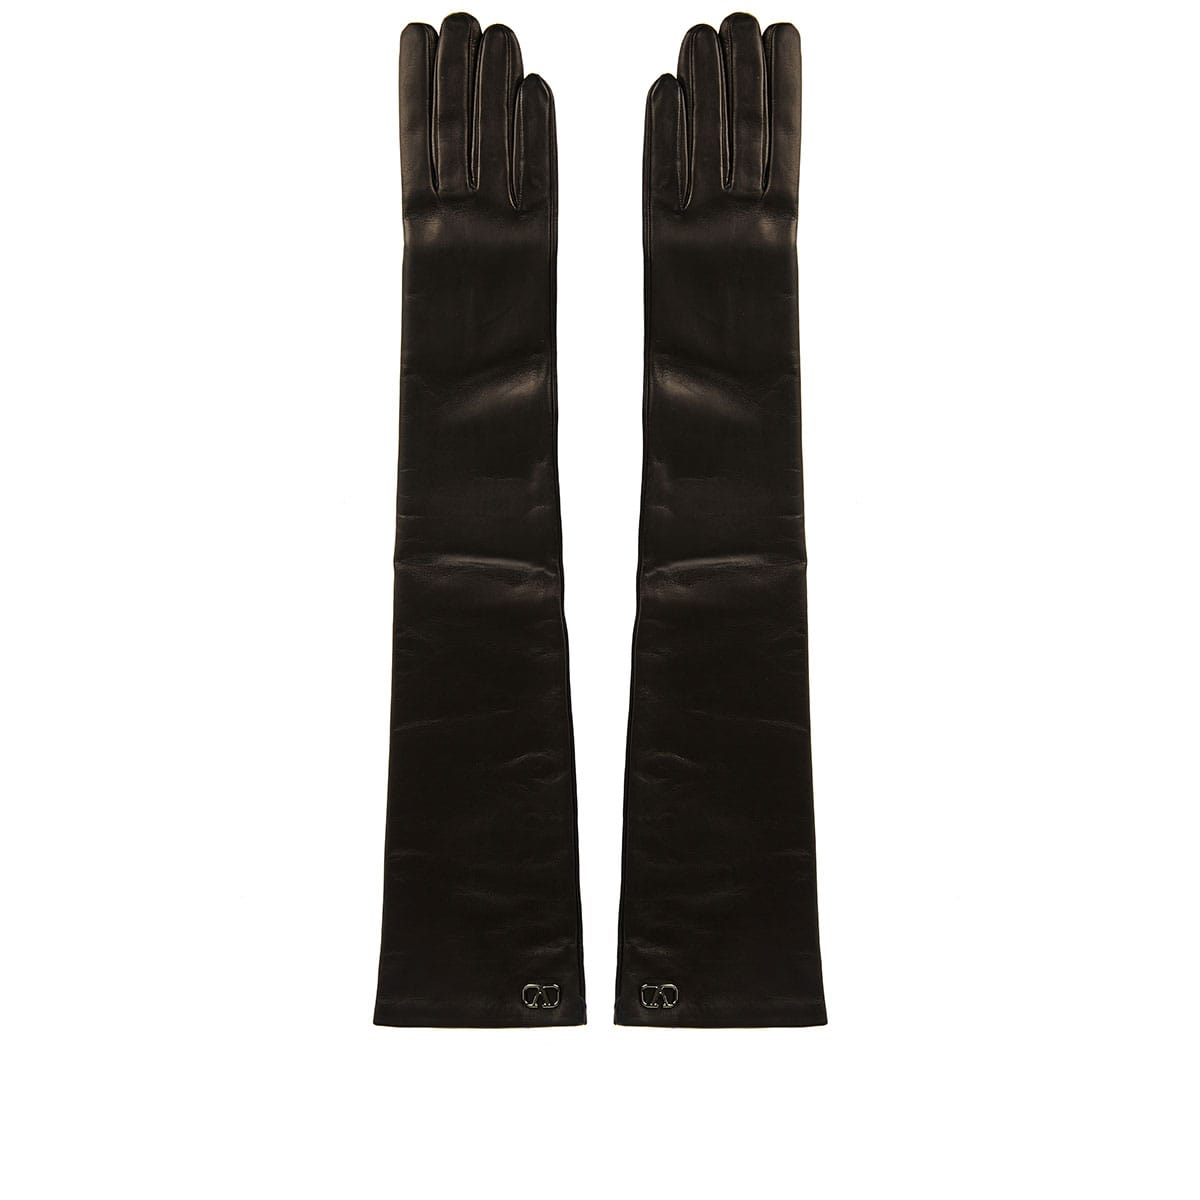 VLOGO long leather gloves